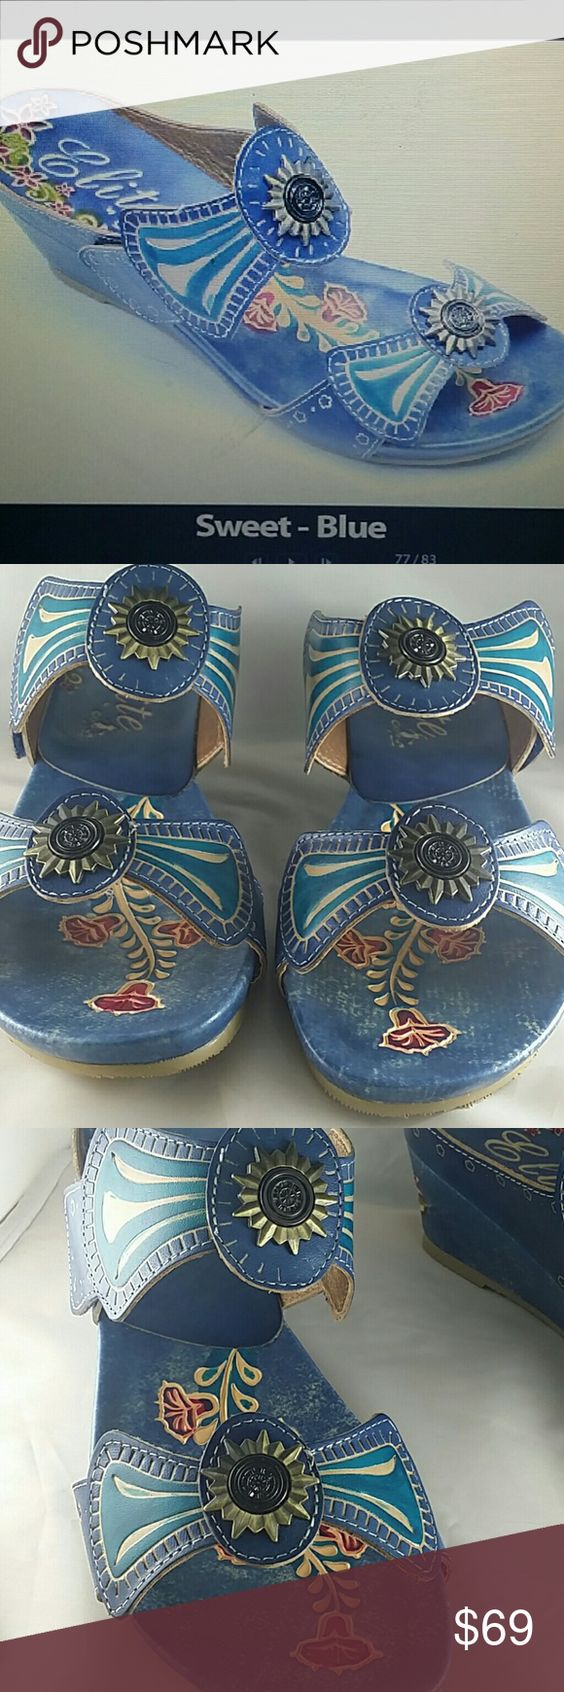 Corky's Women's Elite Sweet Blue Sandals -NWT -Leather  - Manmade sole -Easy slip on styling with hook and loop closure for secure fit. -Open toe and heel -Cushioned foot bed Corky's  Shoes Sandals